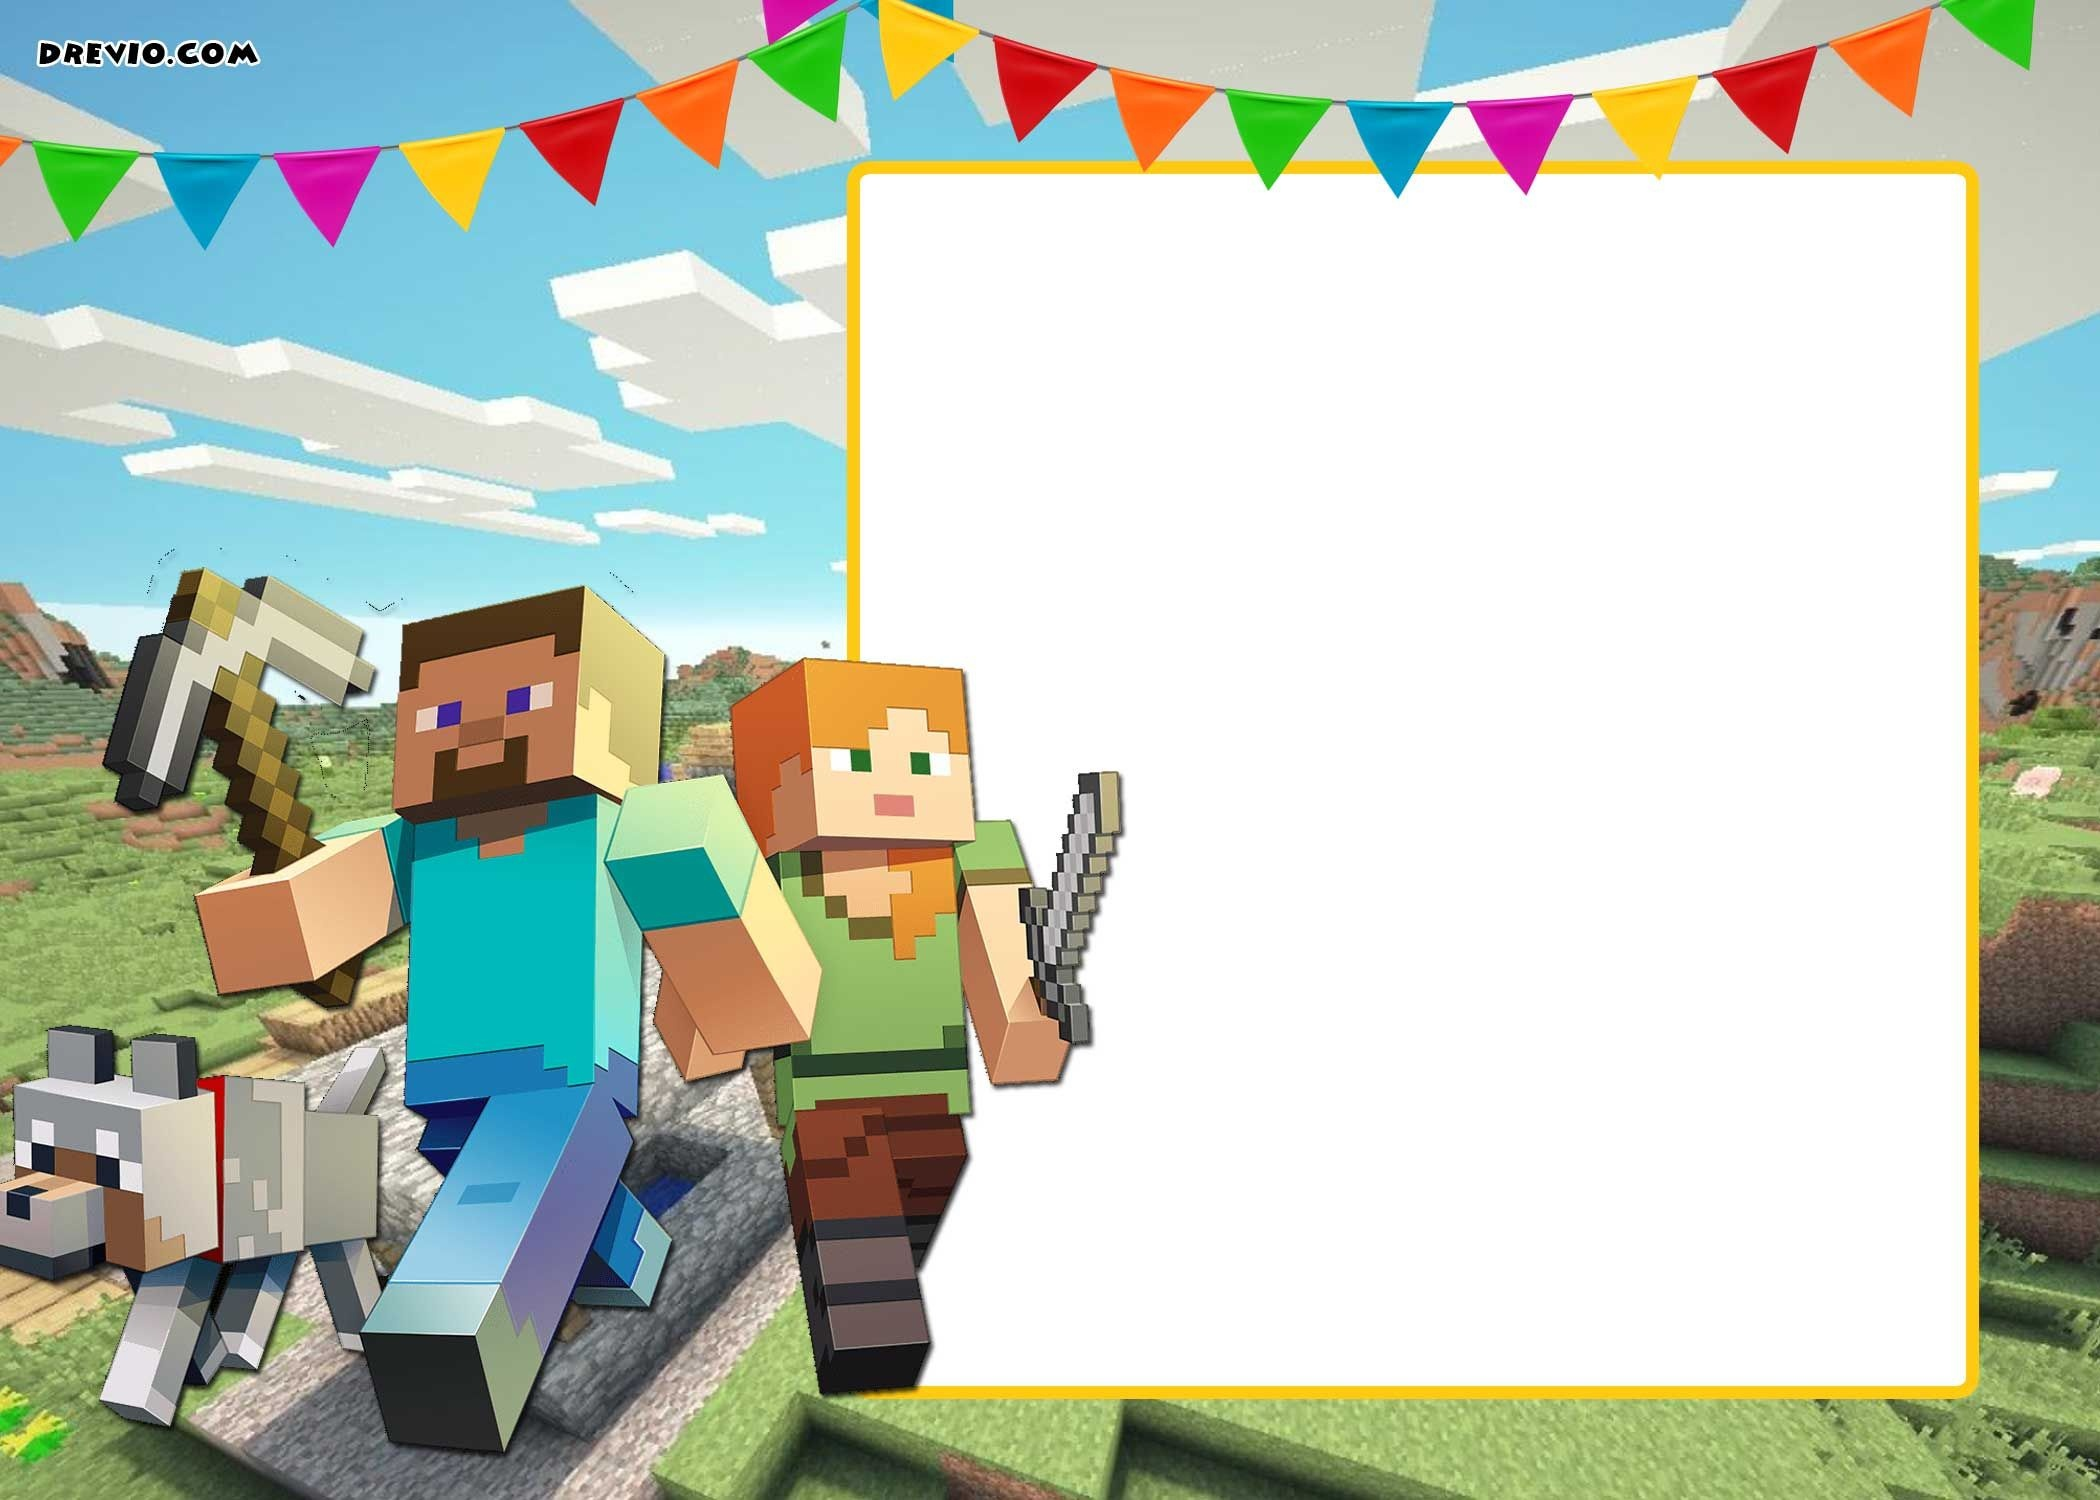 Free Printable Minecraft Birthday Invitation | Party Printables - Free Printable Minecraft Birthday Party Invitations Templates